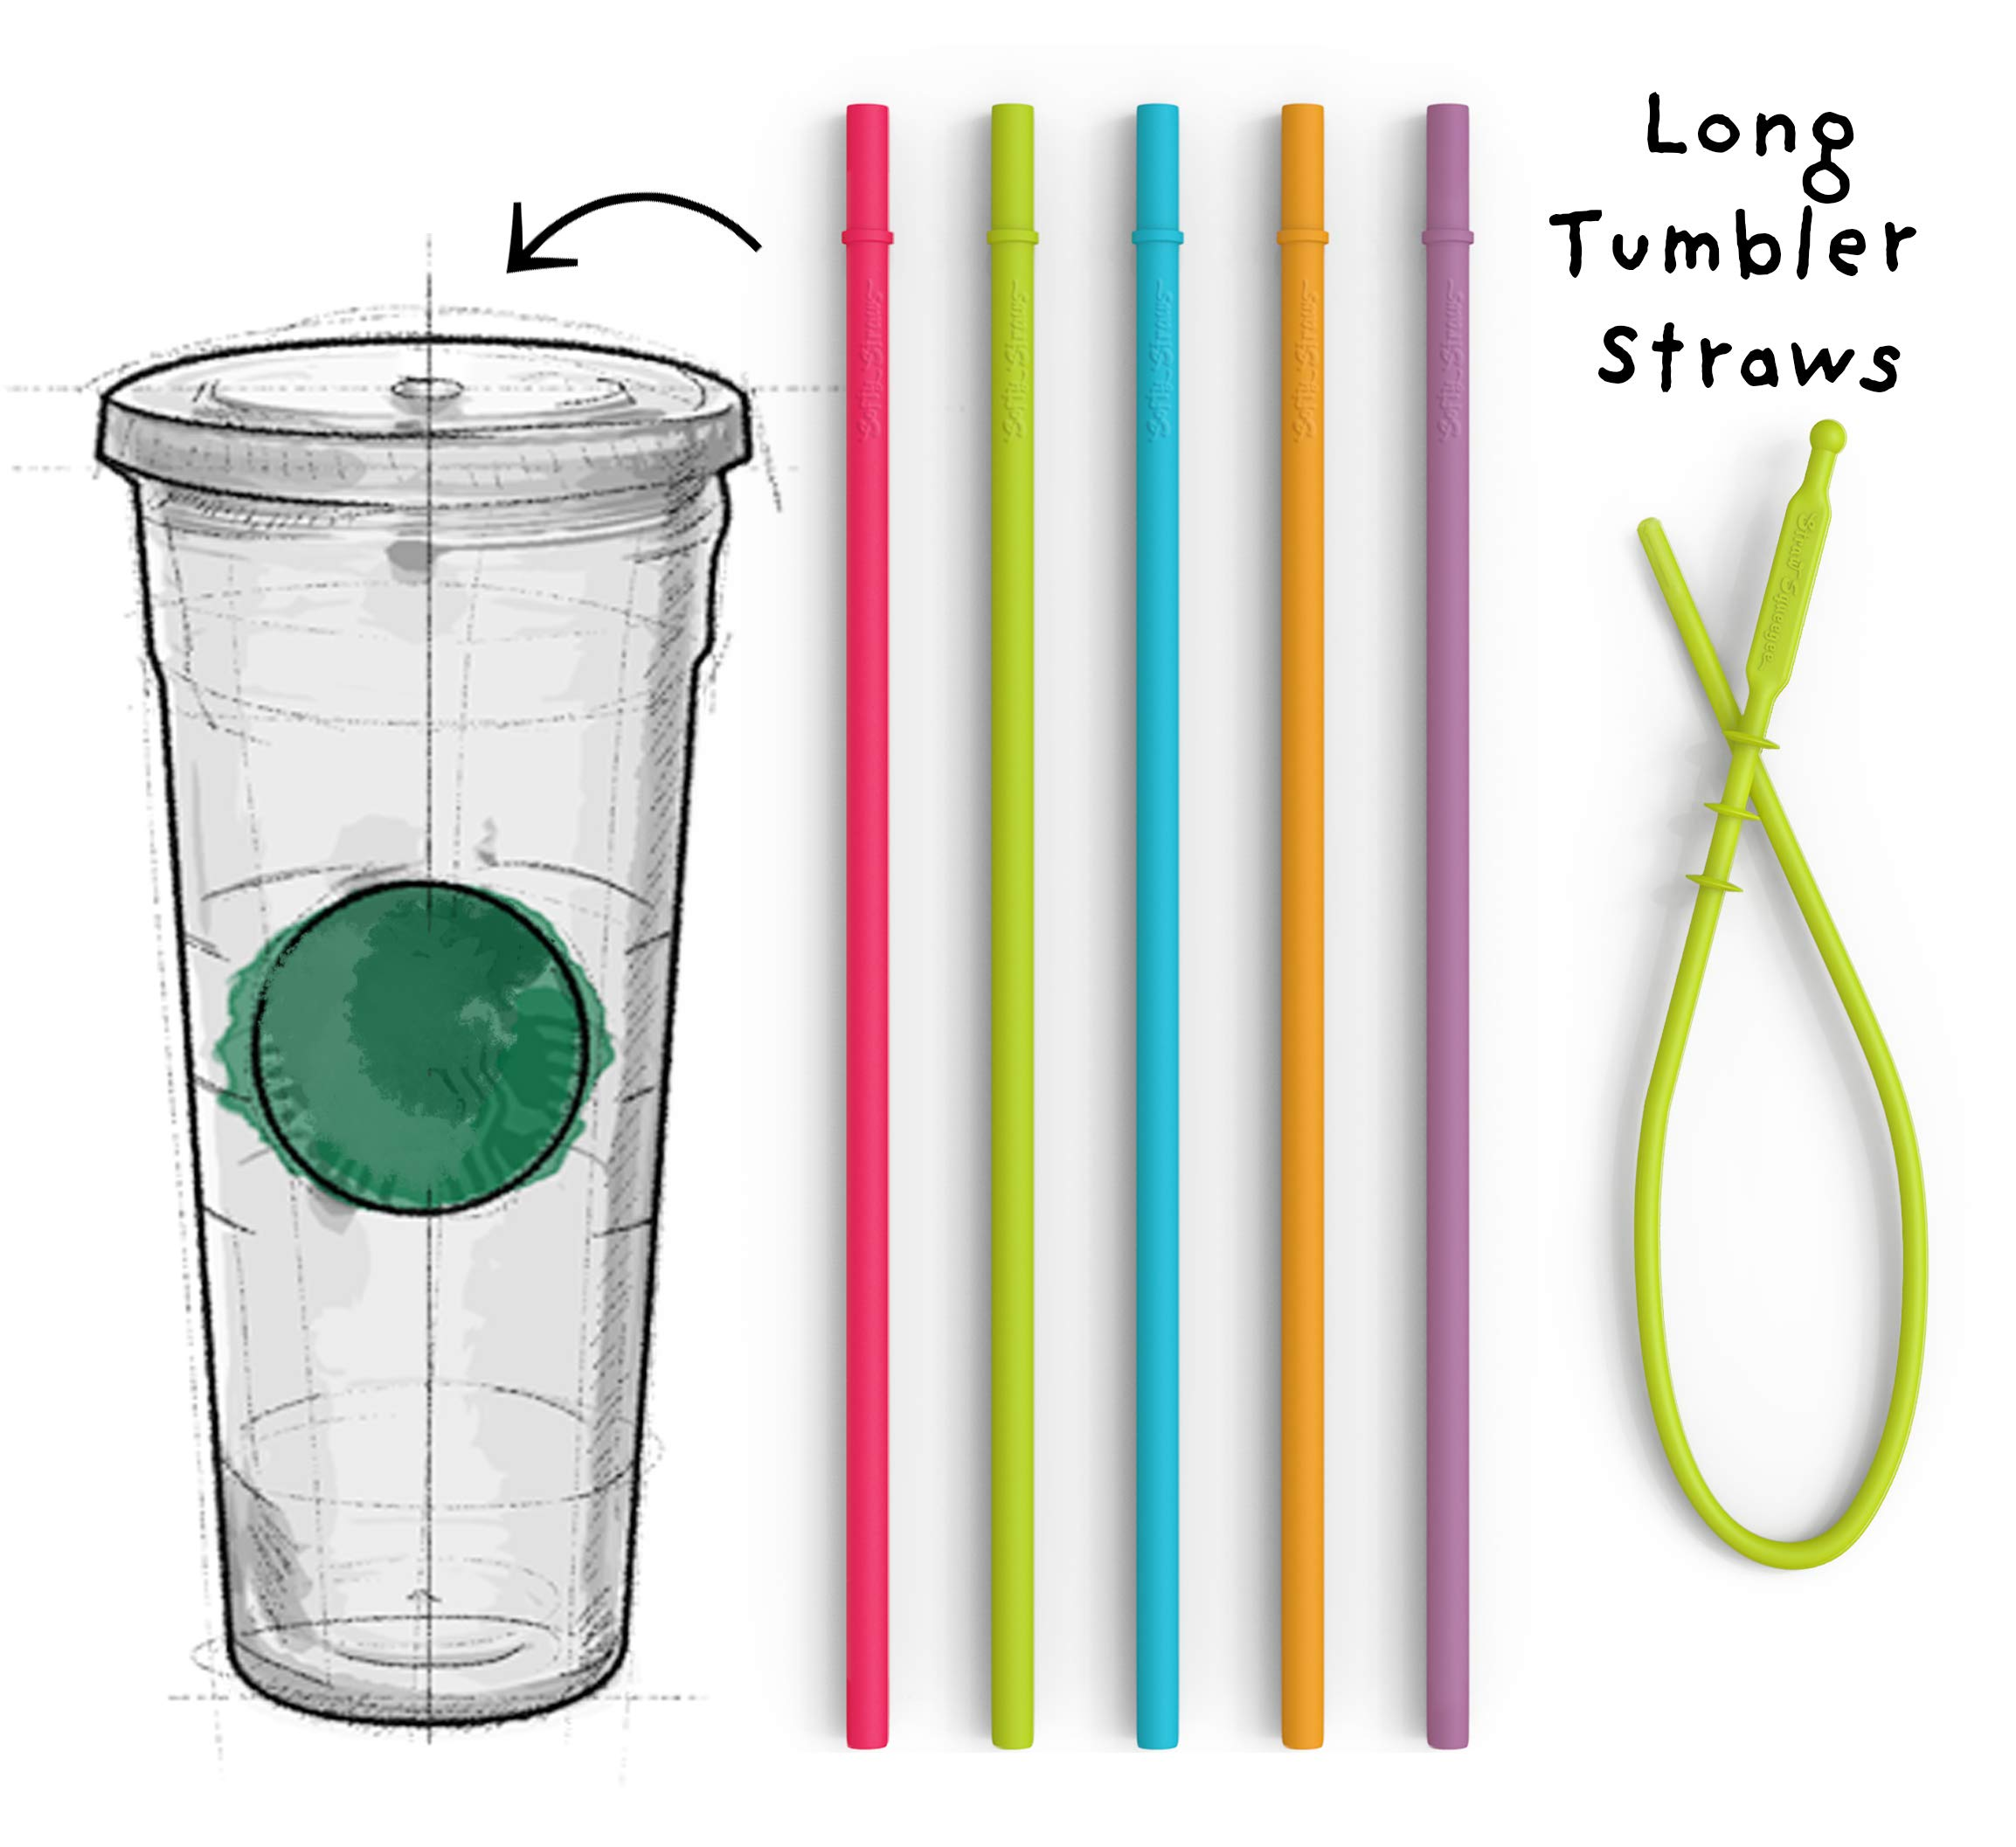 Long Silicone Straws for Tumbler - Slender Silicon Rubber Reusable Drinking Straws for Simple Modern, Starbucks, Yeti, rTic, Acrylic 24 30 40 oz Tumbler Cups - Flexible BPA Free. by Softy Straws